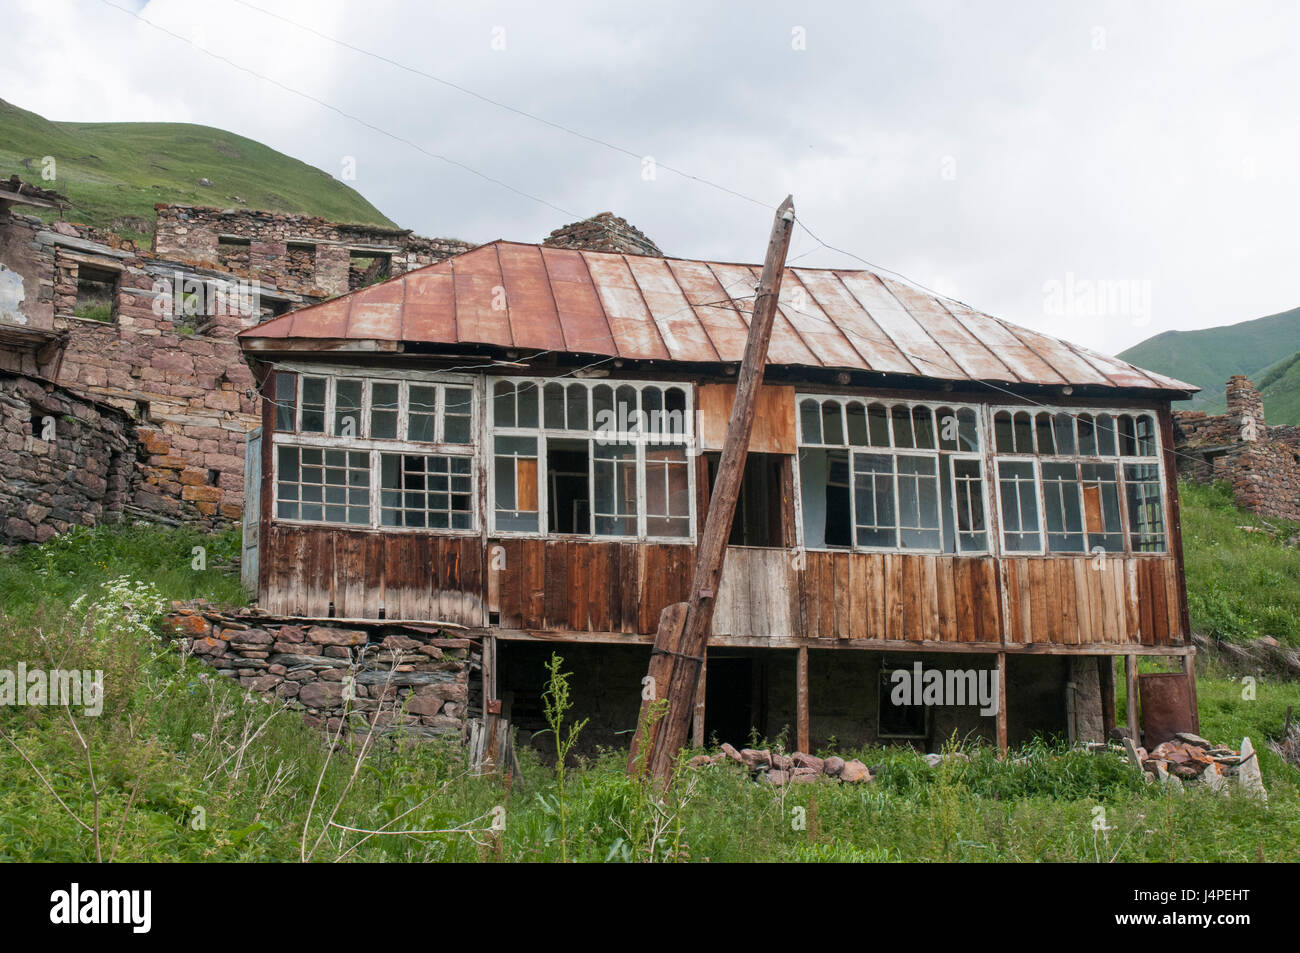 Homes abandoned by Ossetian villagers in the Truso Valley, Georgia, bordering the Russian-sponsored renegade territory - Stock Image